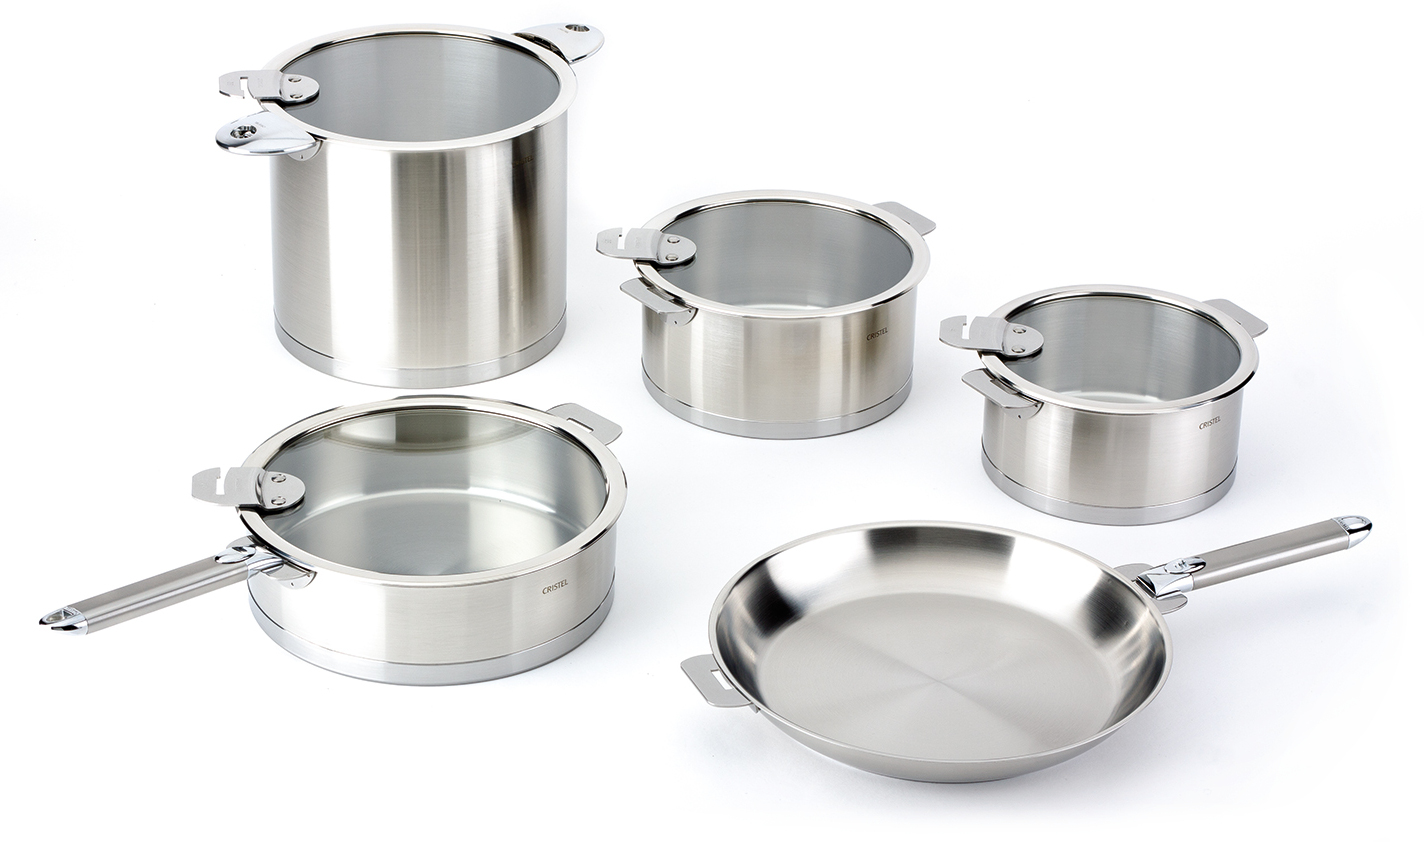 Cristel Strate 18/10 Stainless Steel 13 Piece Cookware Set with Removable Handles